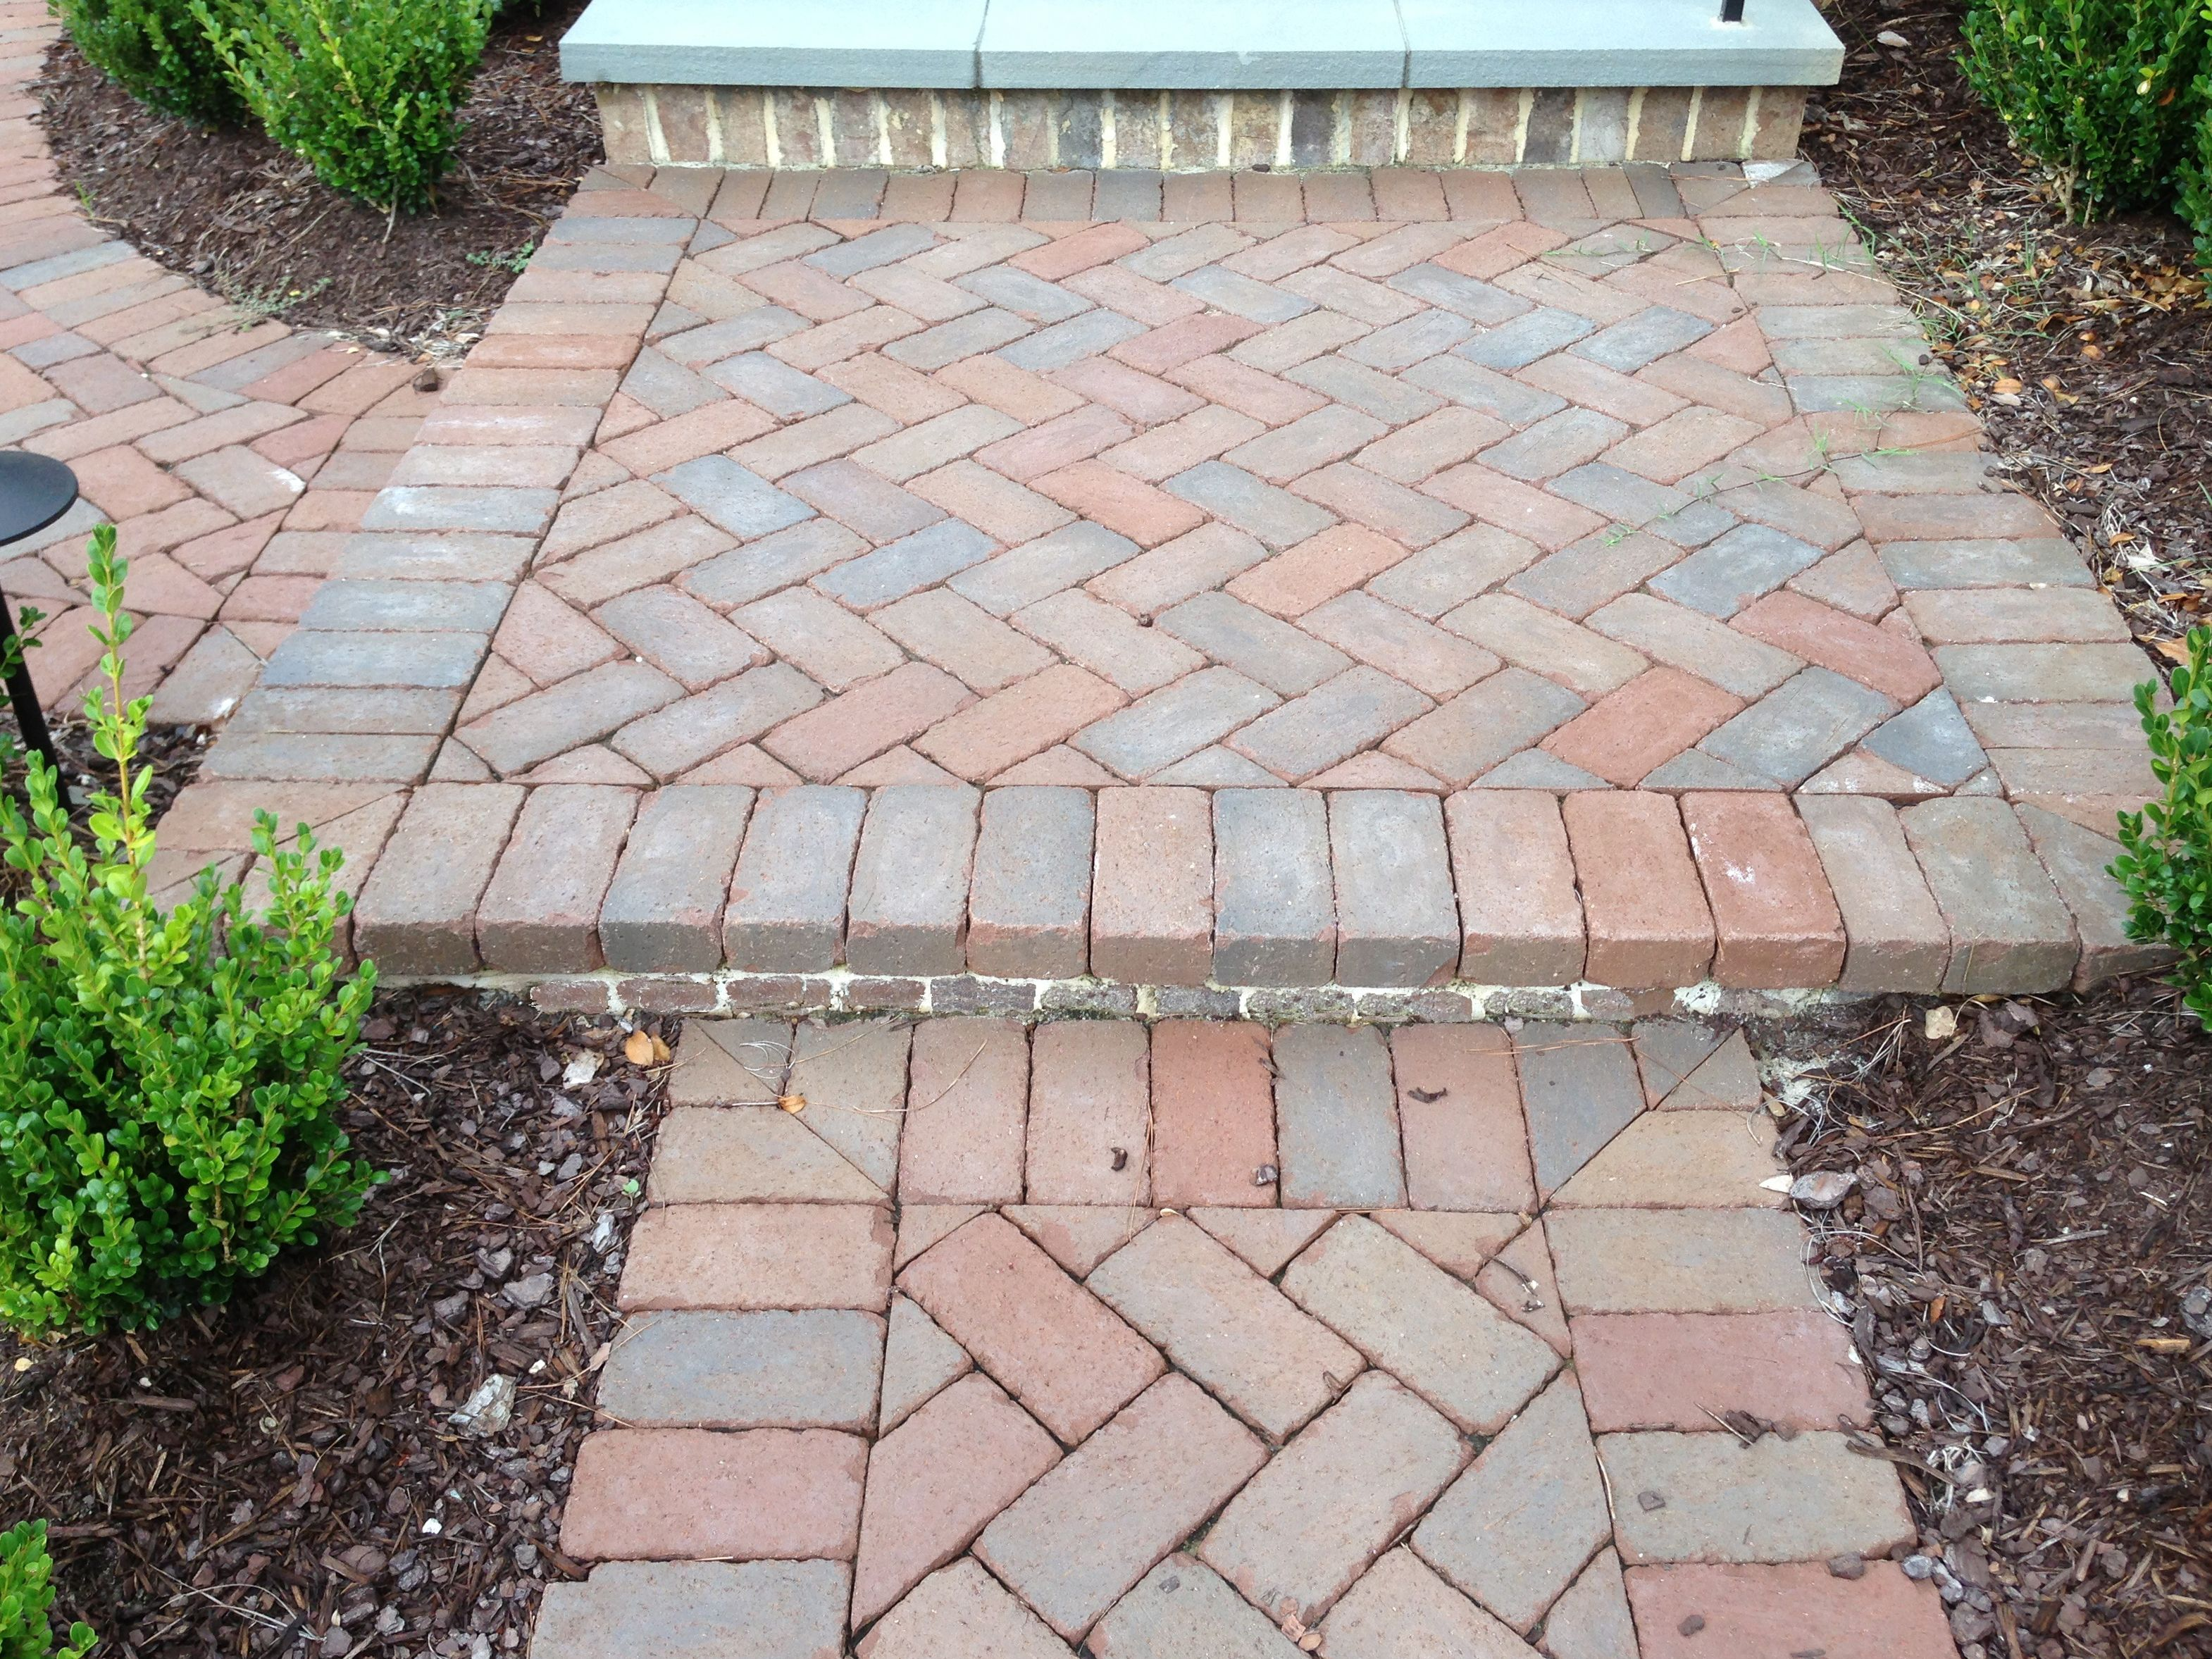 Do You Like Chocolate Tones Take A Look At This Rumbled Cocoa Platform Step And Walkway Pavers Made Especially For Patios Backyard Design Yard Design Patios